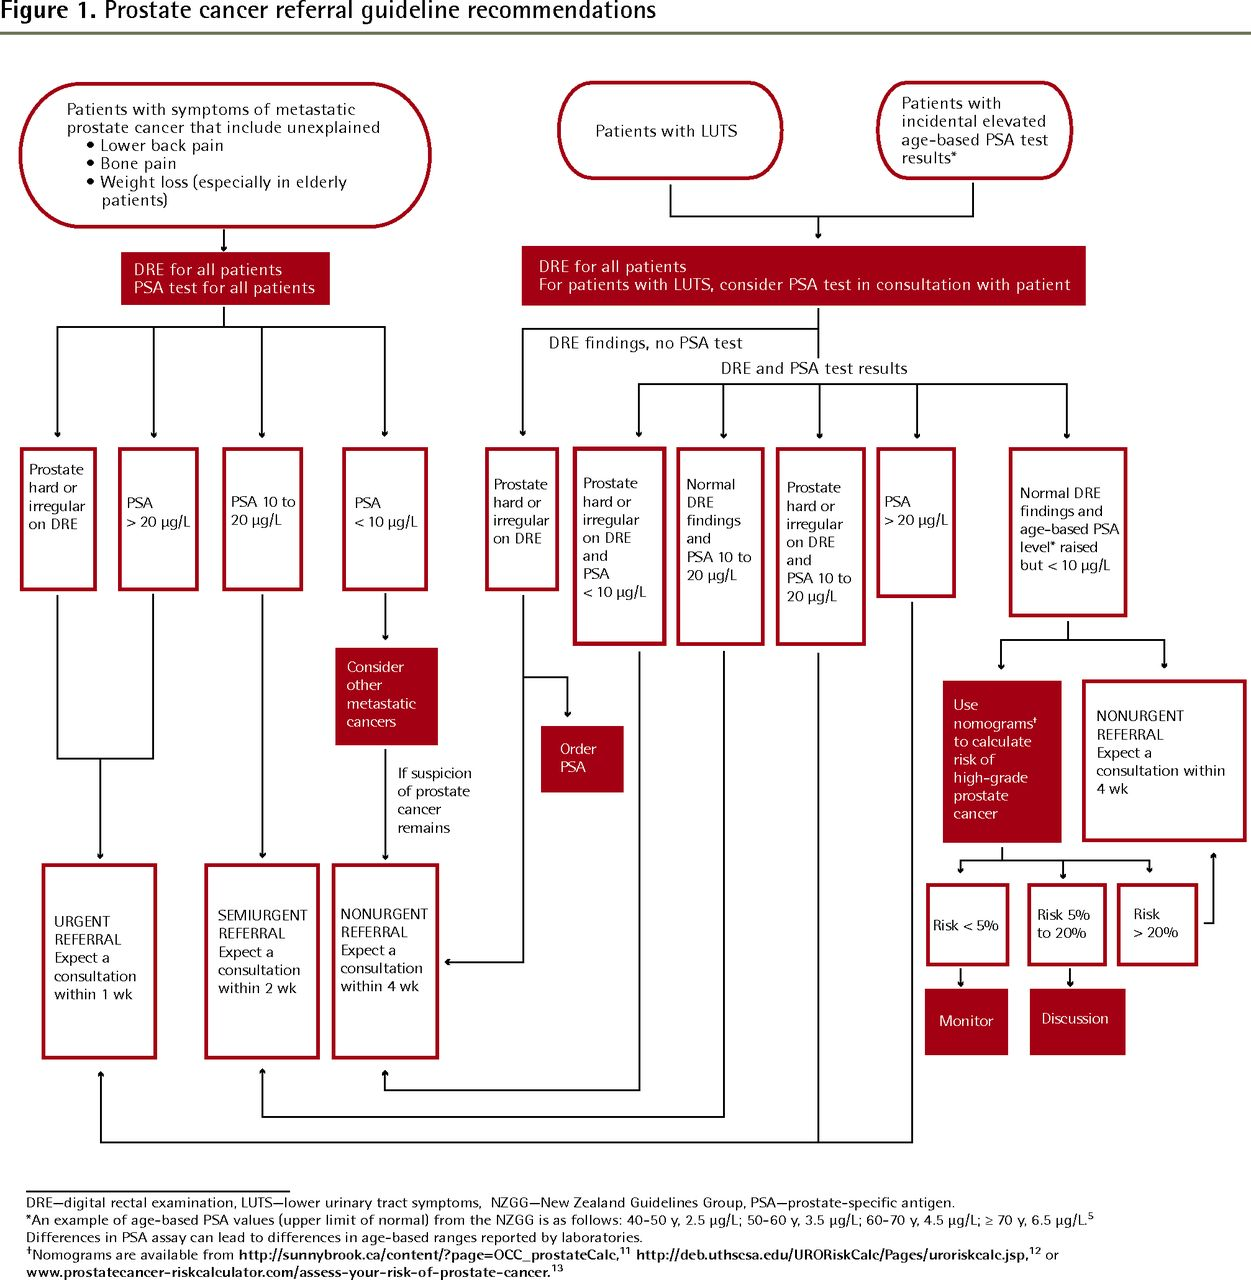 medium resolution of download figure open in new tab figure 1 prostate cancer referral guideline recommendations